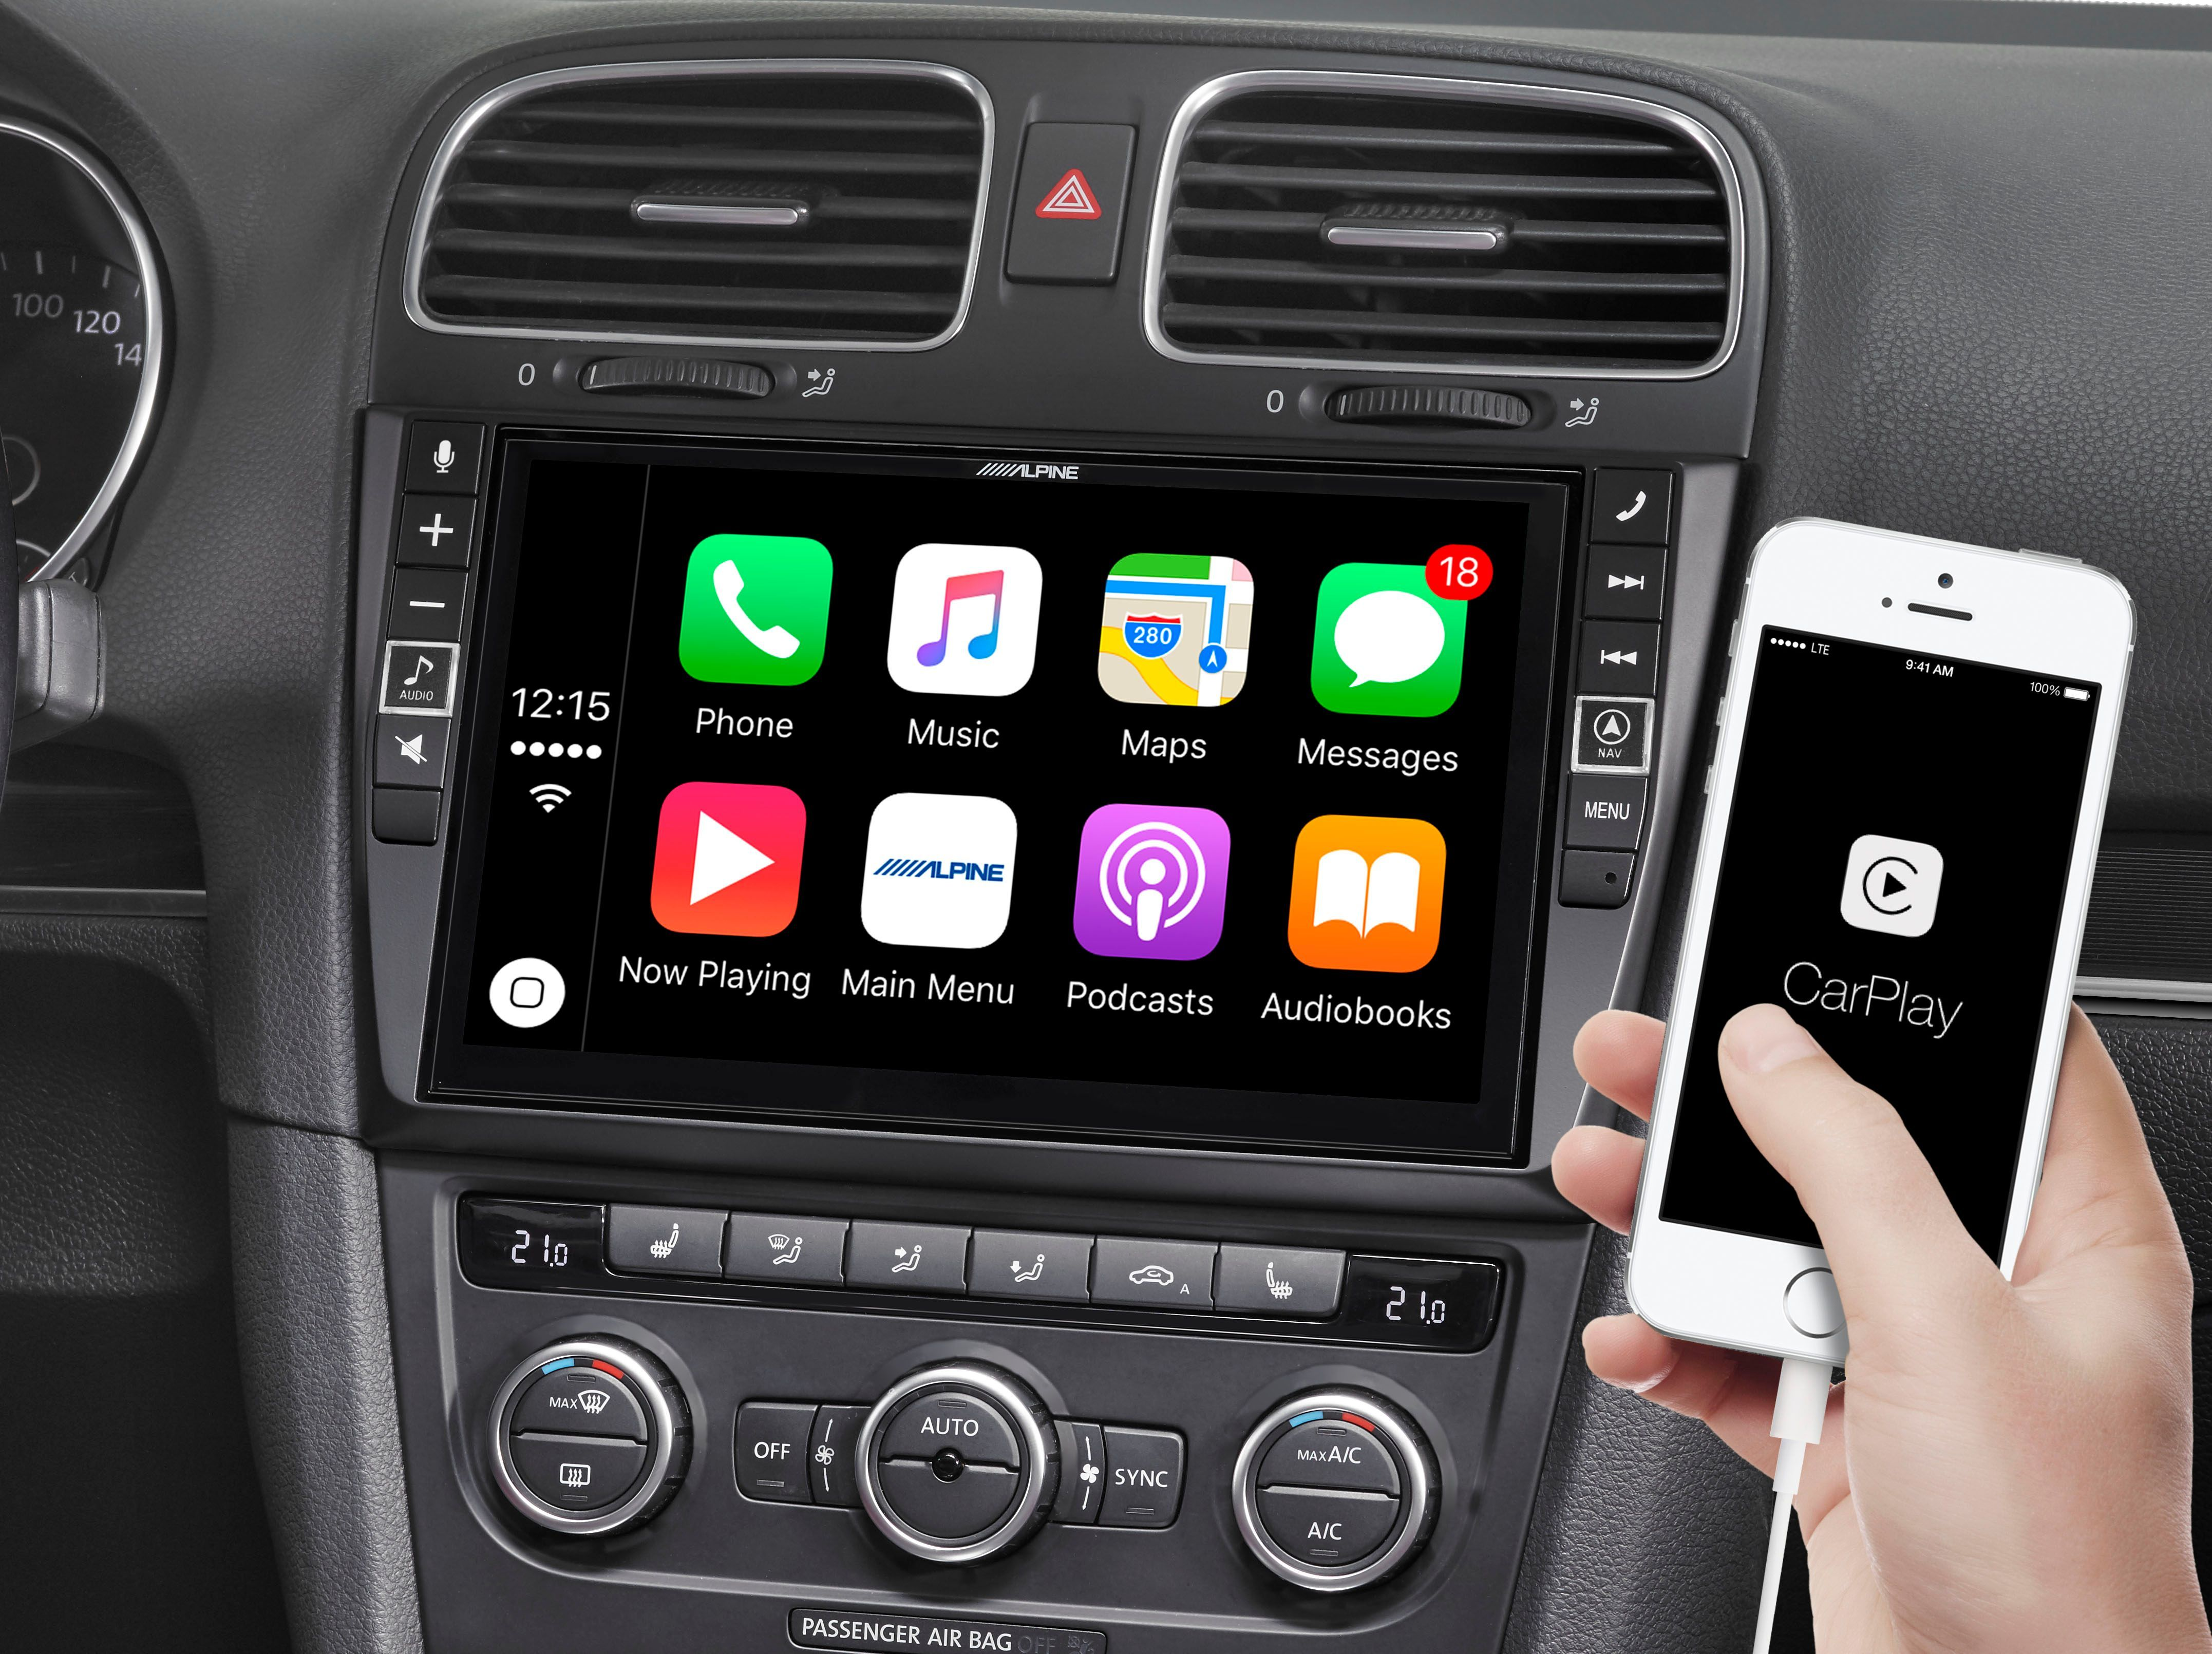 Add a 9-inch screen to your VW Golf VI with Apple CarPlay